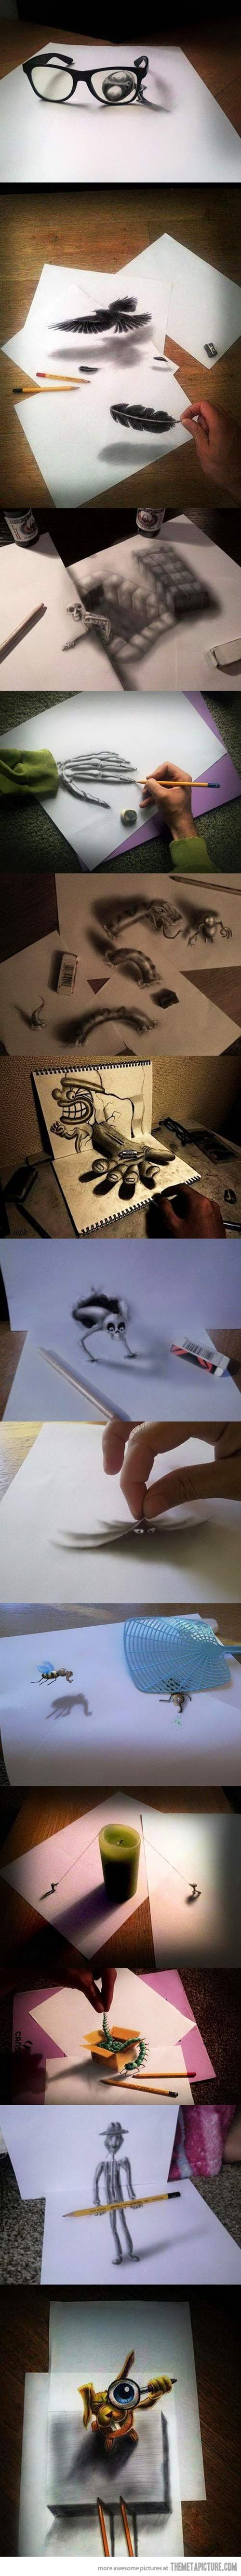 I wish I could draw like this!!